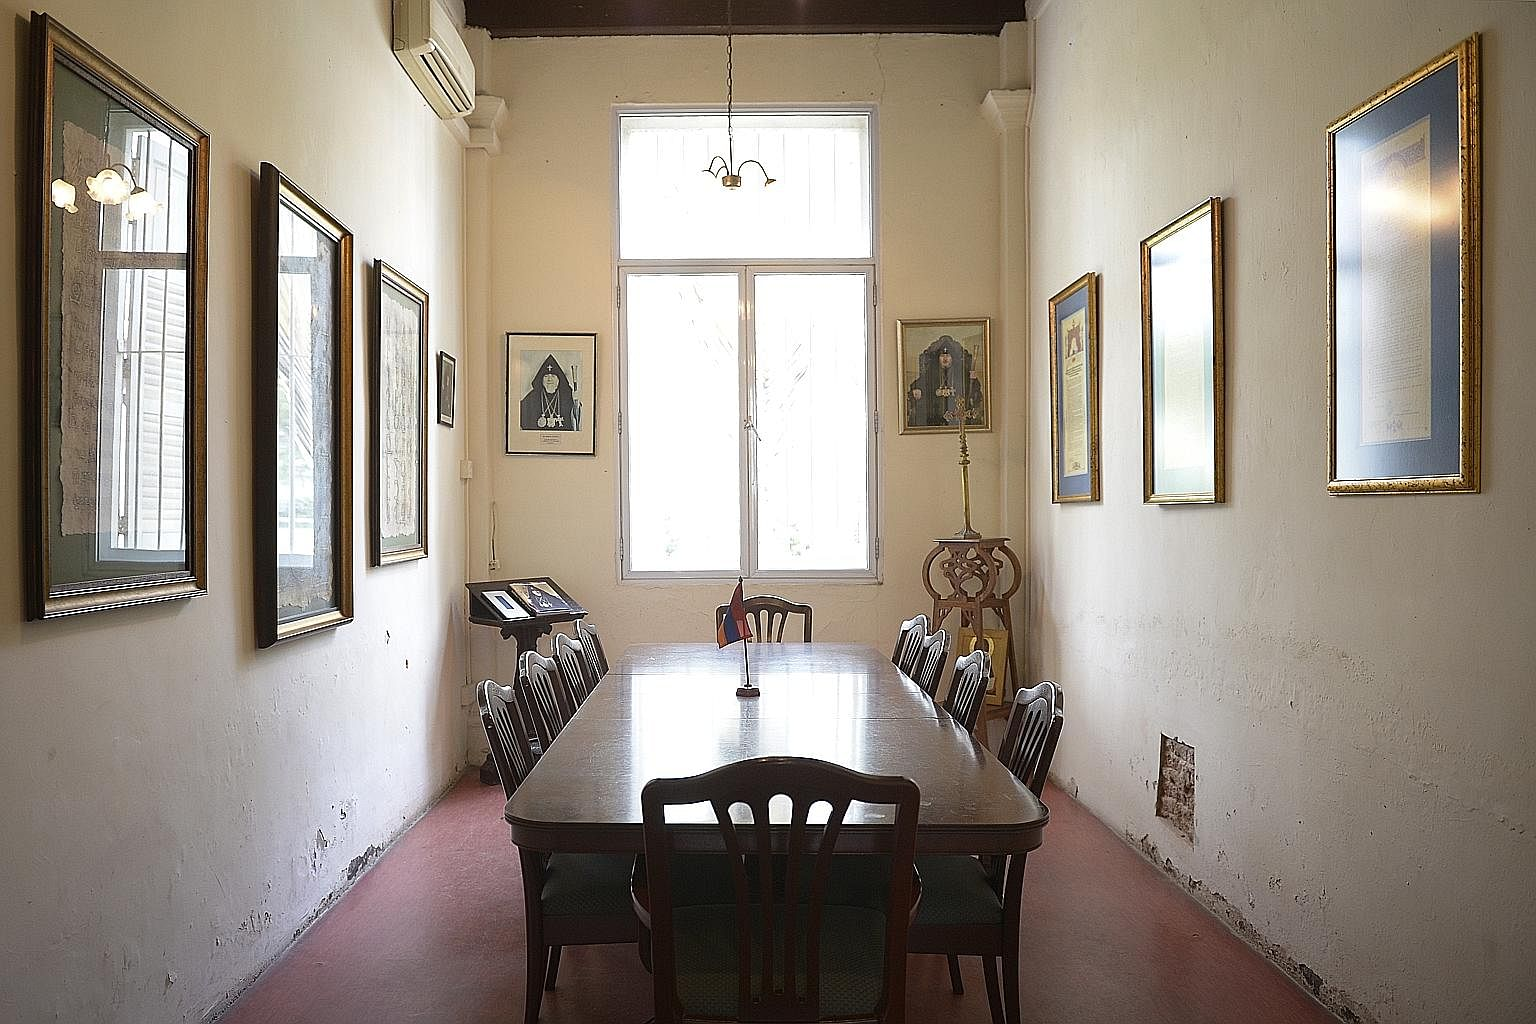 A meeting room on the ground floor of the parsonage in Hill Street. On its walls are portraits of leaders in the Armenian faith, and pictures from the Armenians' culture and history.